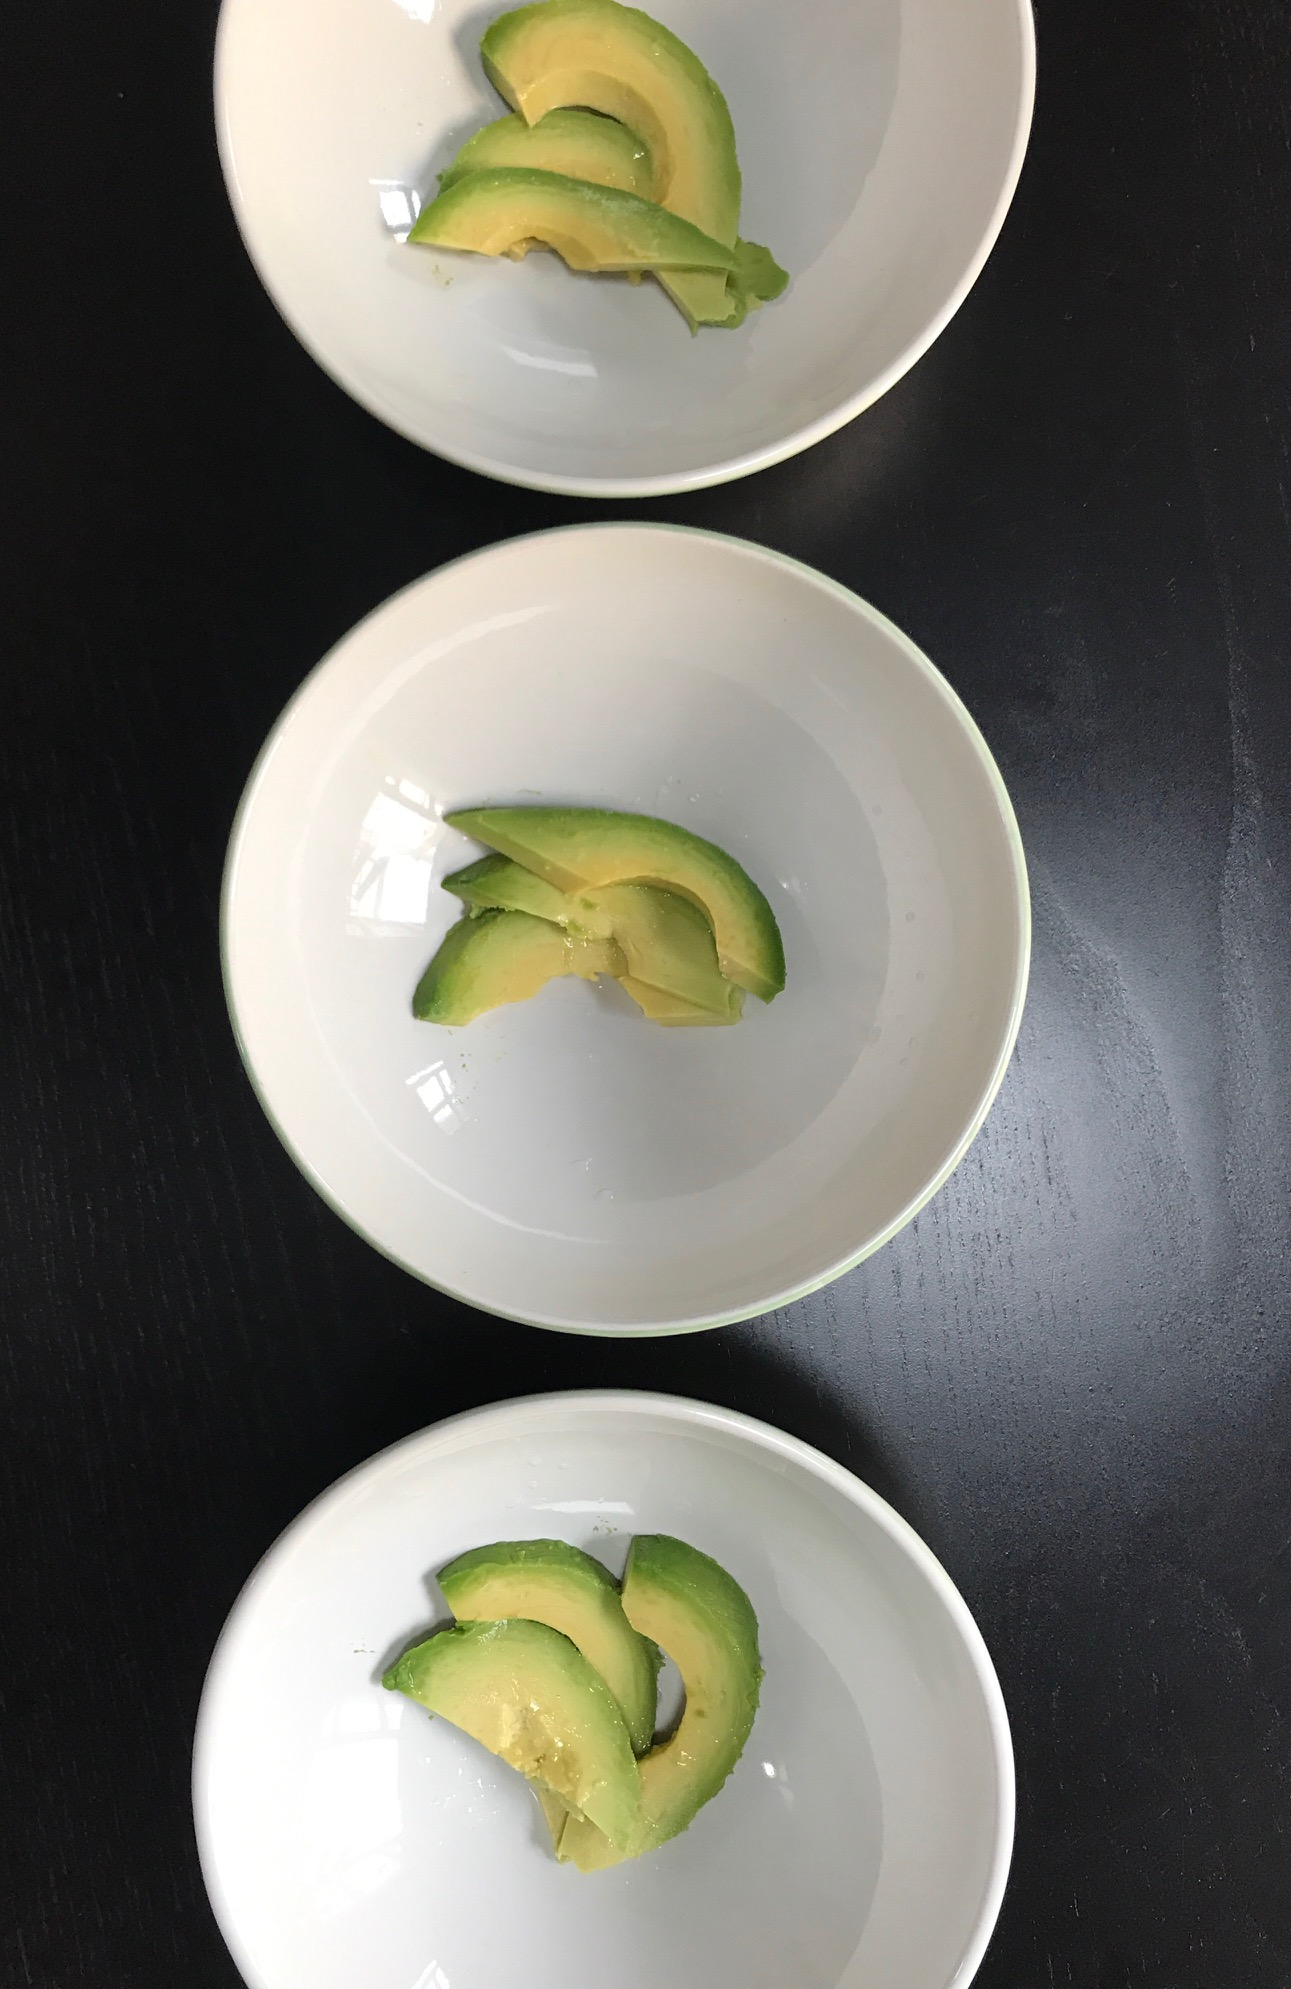 Place avocados in bowls before ladling in the chilled gazpacho